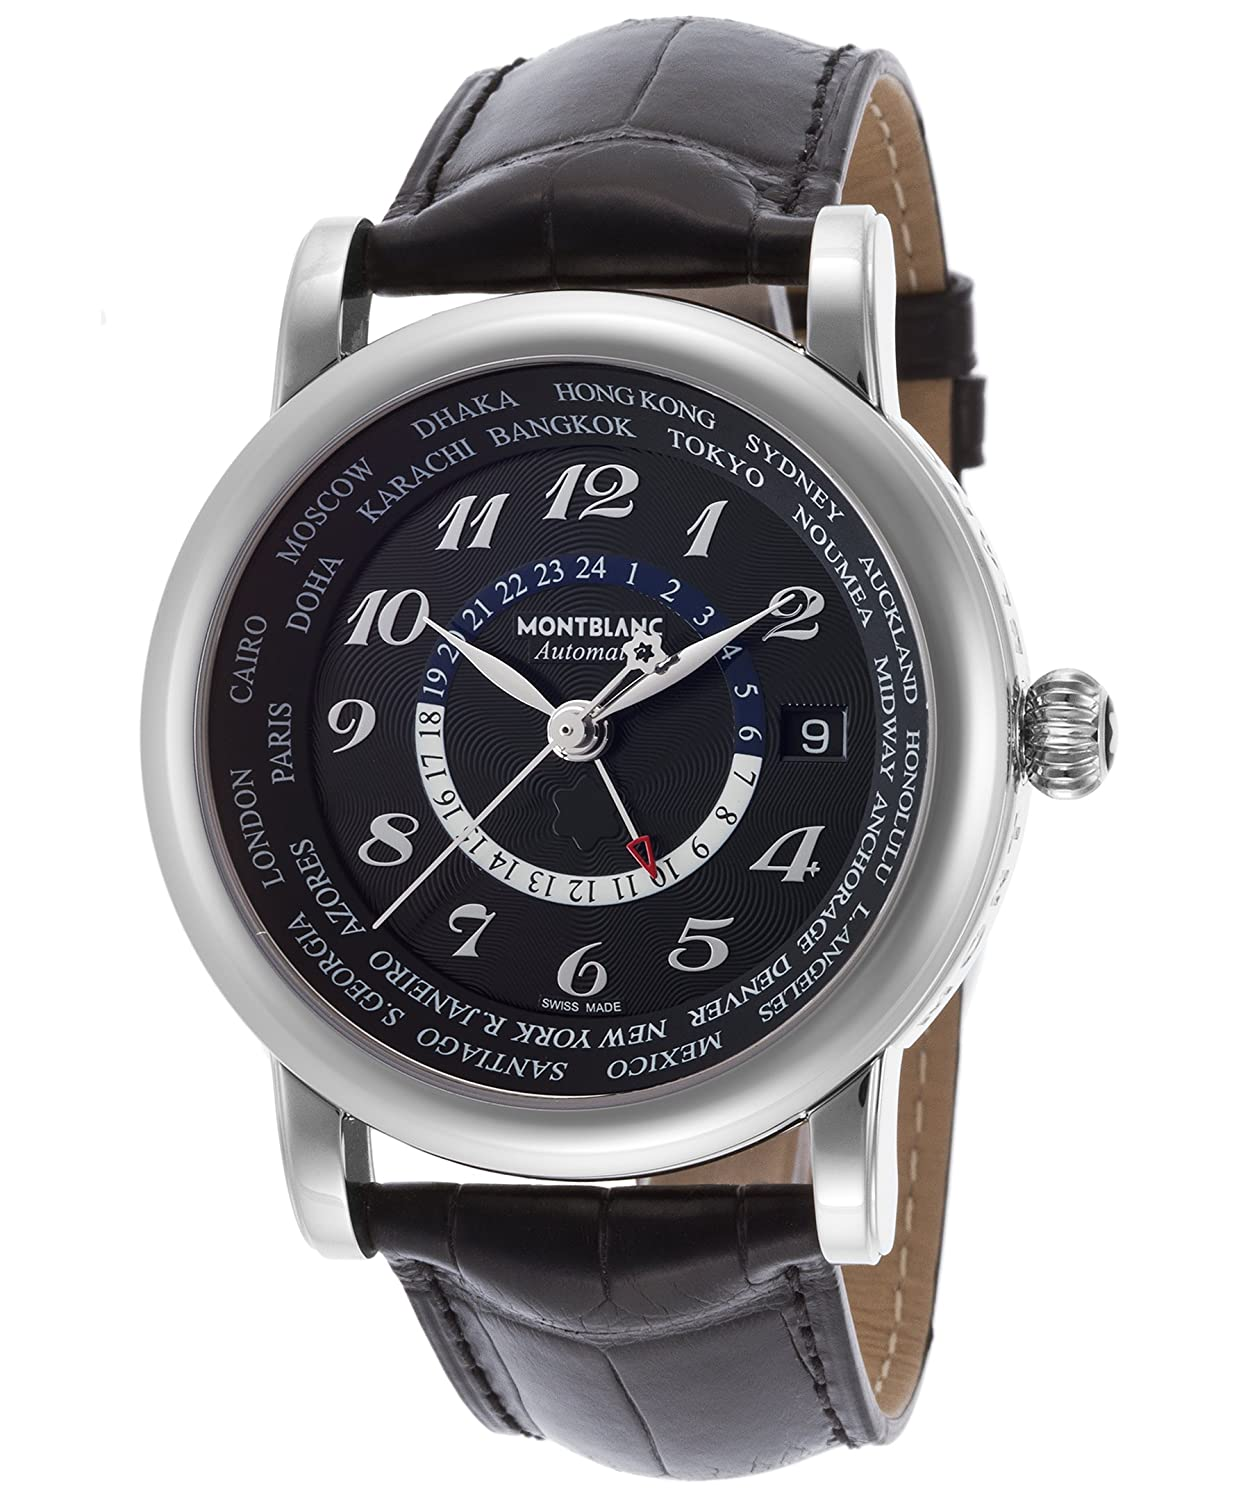 0e4ce8d6b4e Amazon.com: Montblanc Men's 109285 Star Analog Display Swiss Automatic  Black Watch: Montblanc: Watches